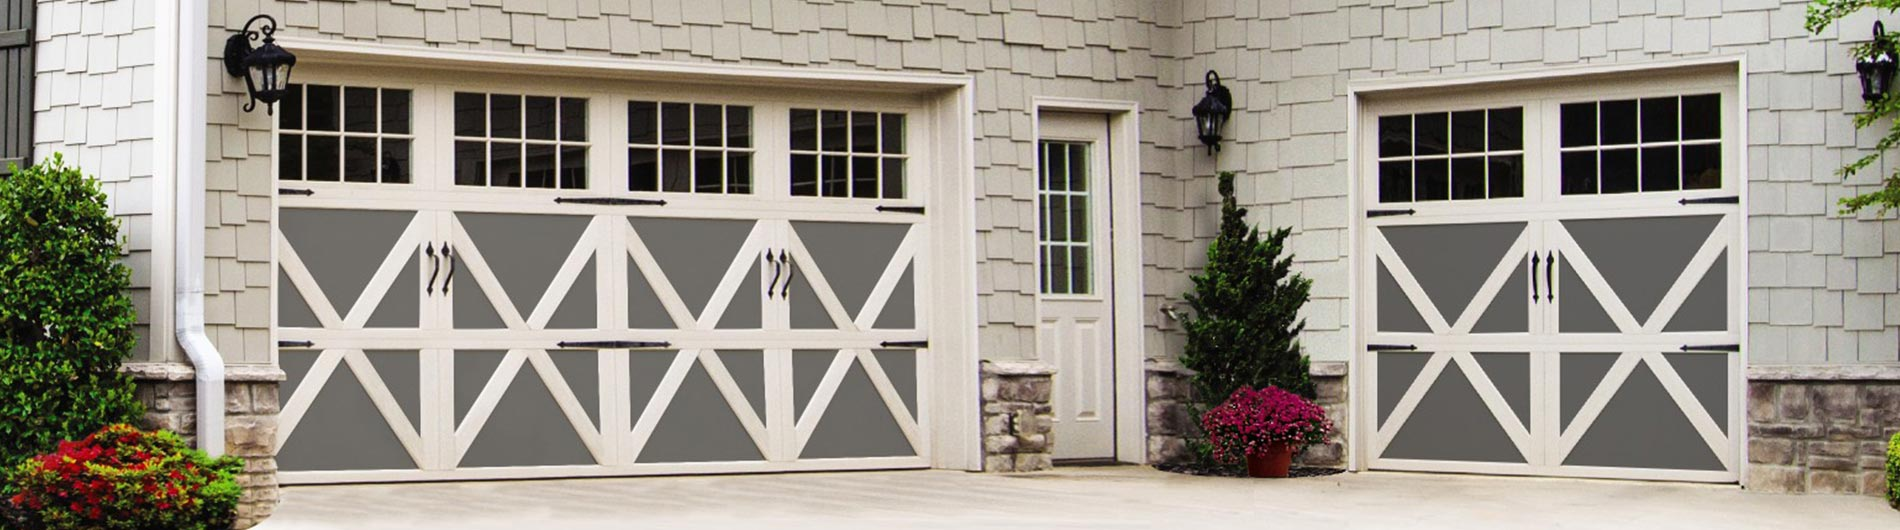 Carriage house steel garage doors 9700 9700 ch garage door publicscrutiny Gallery